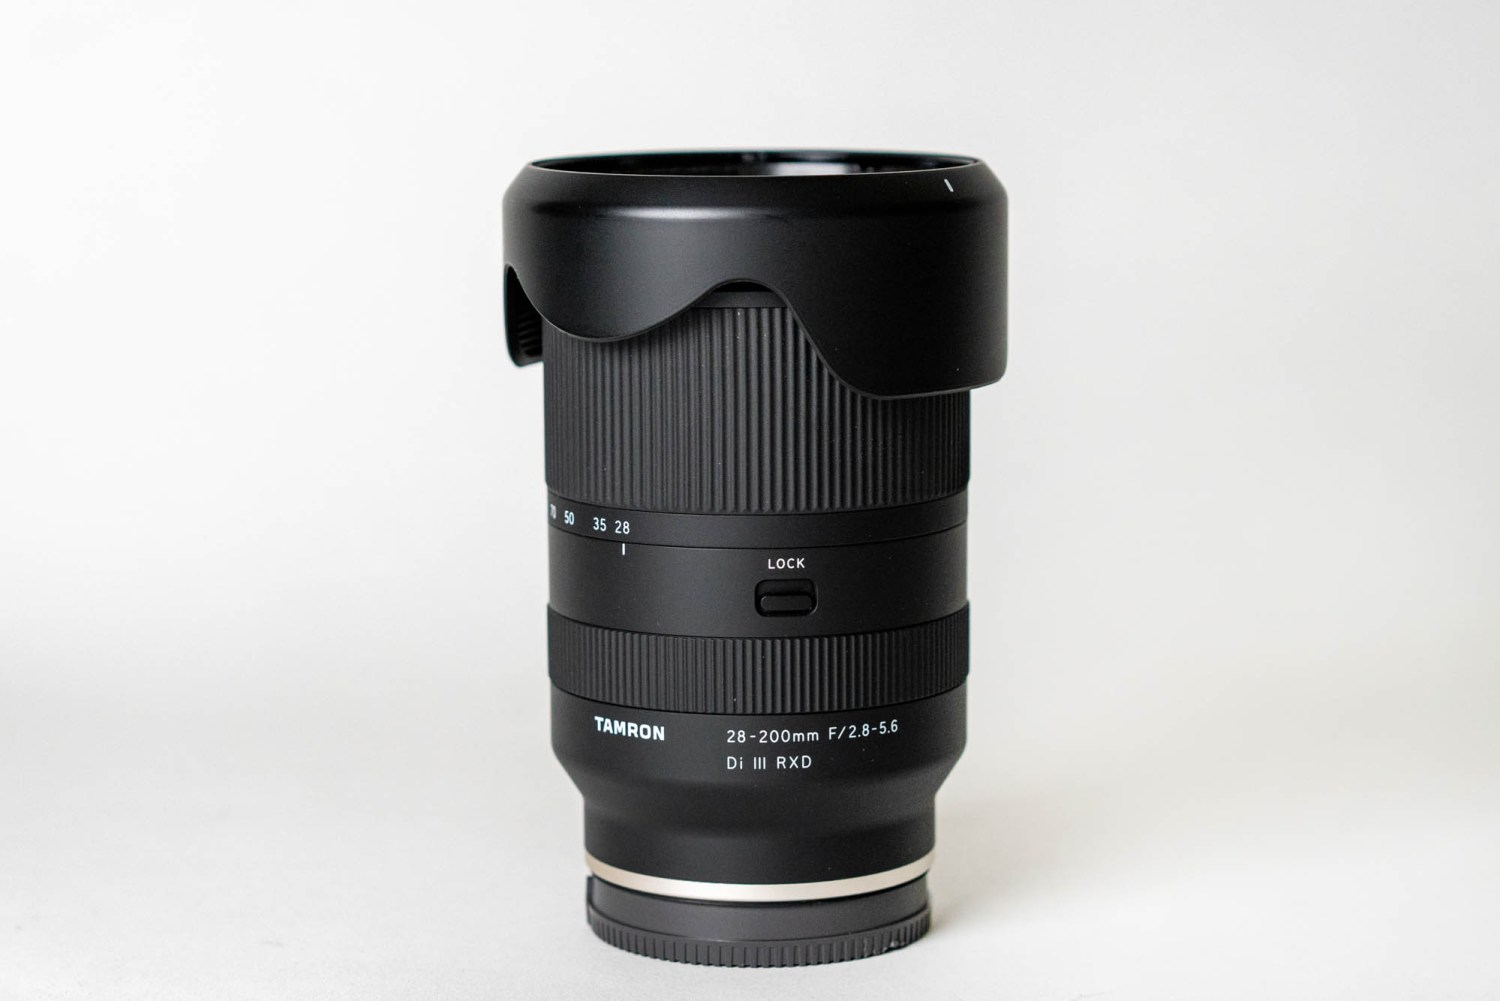 Tamron 28-200mm for Sony